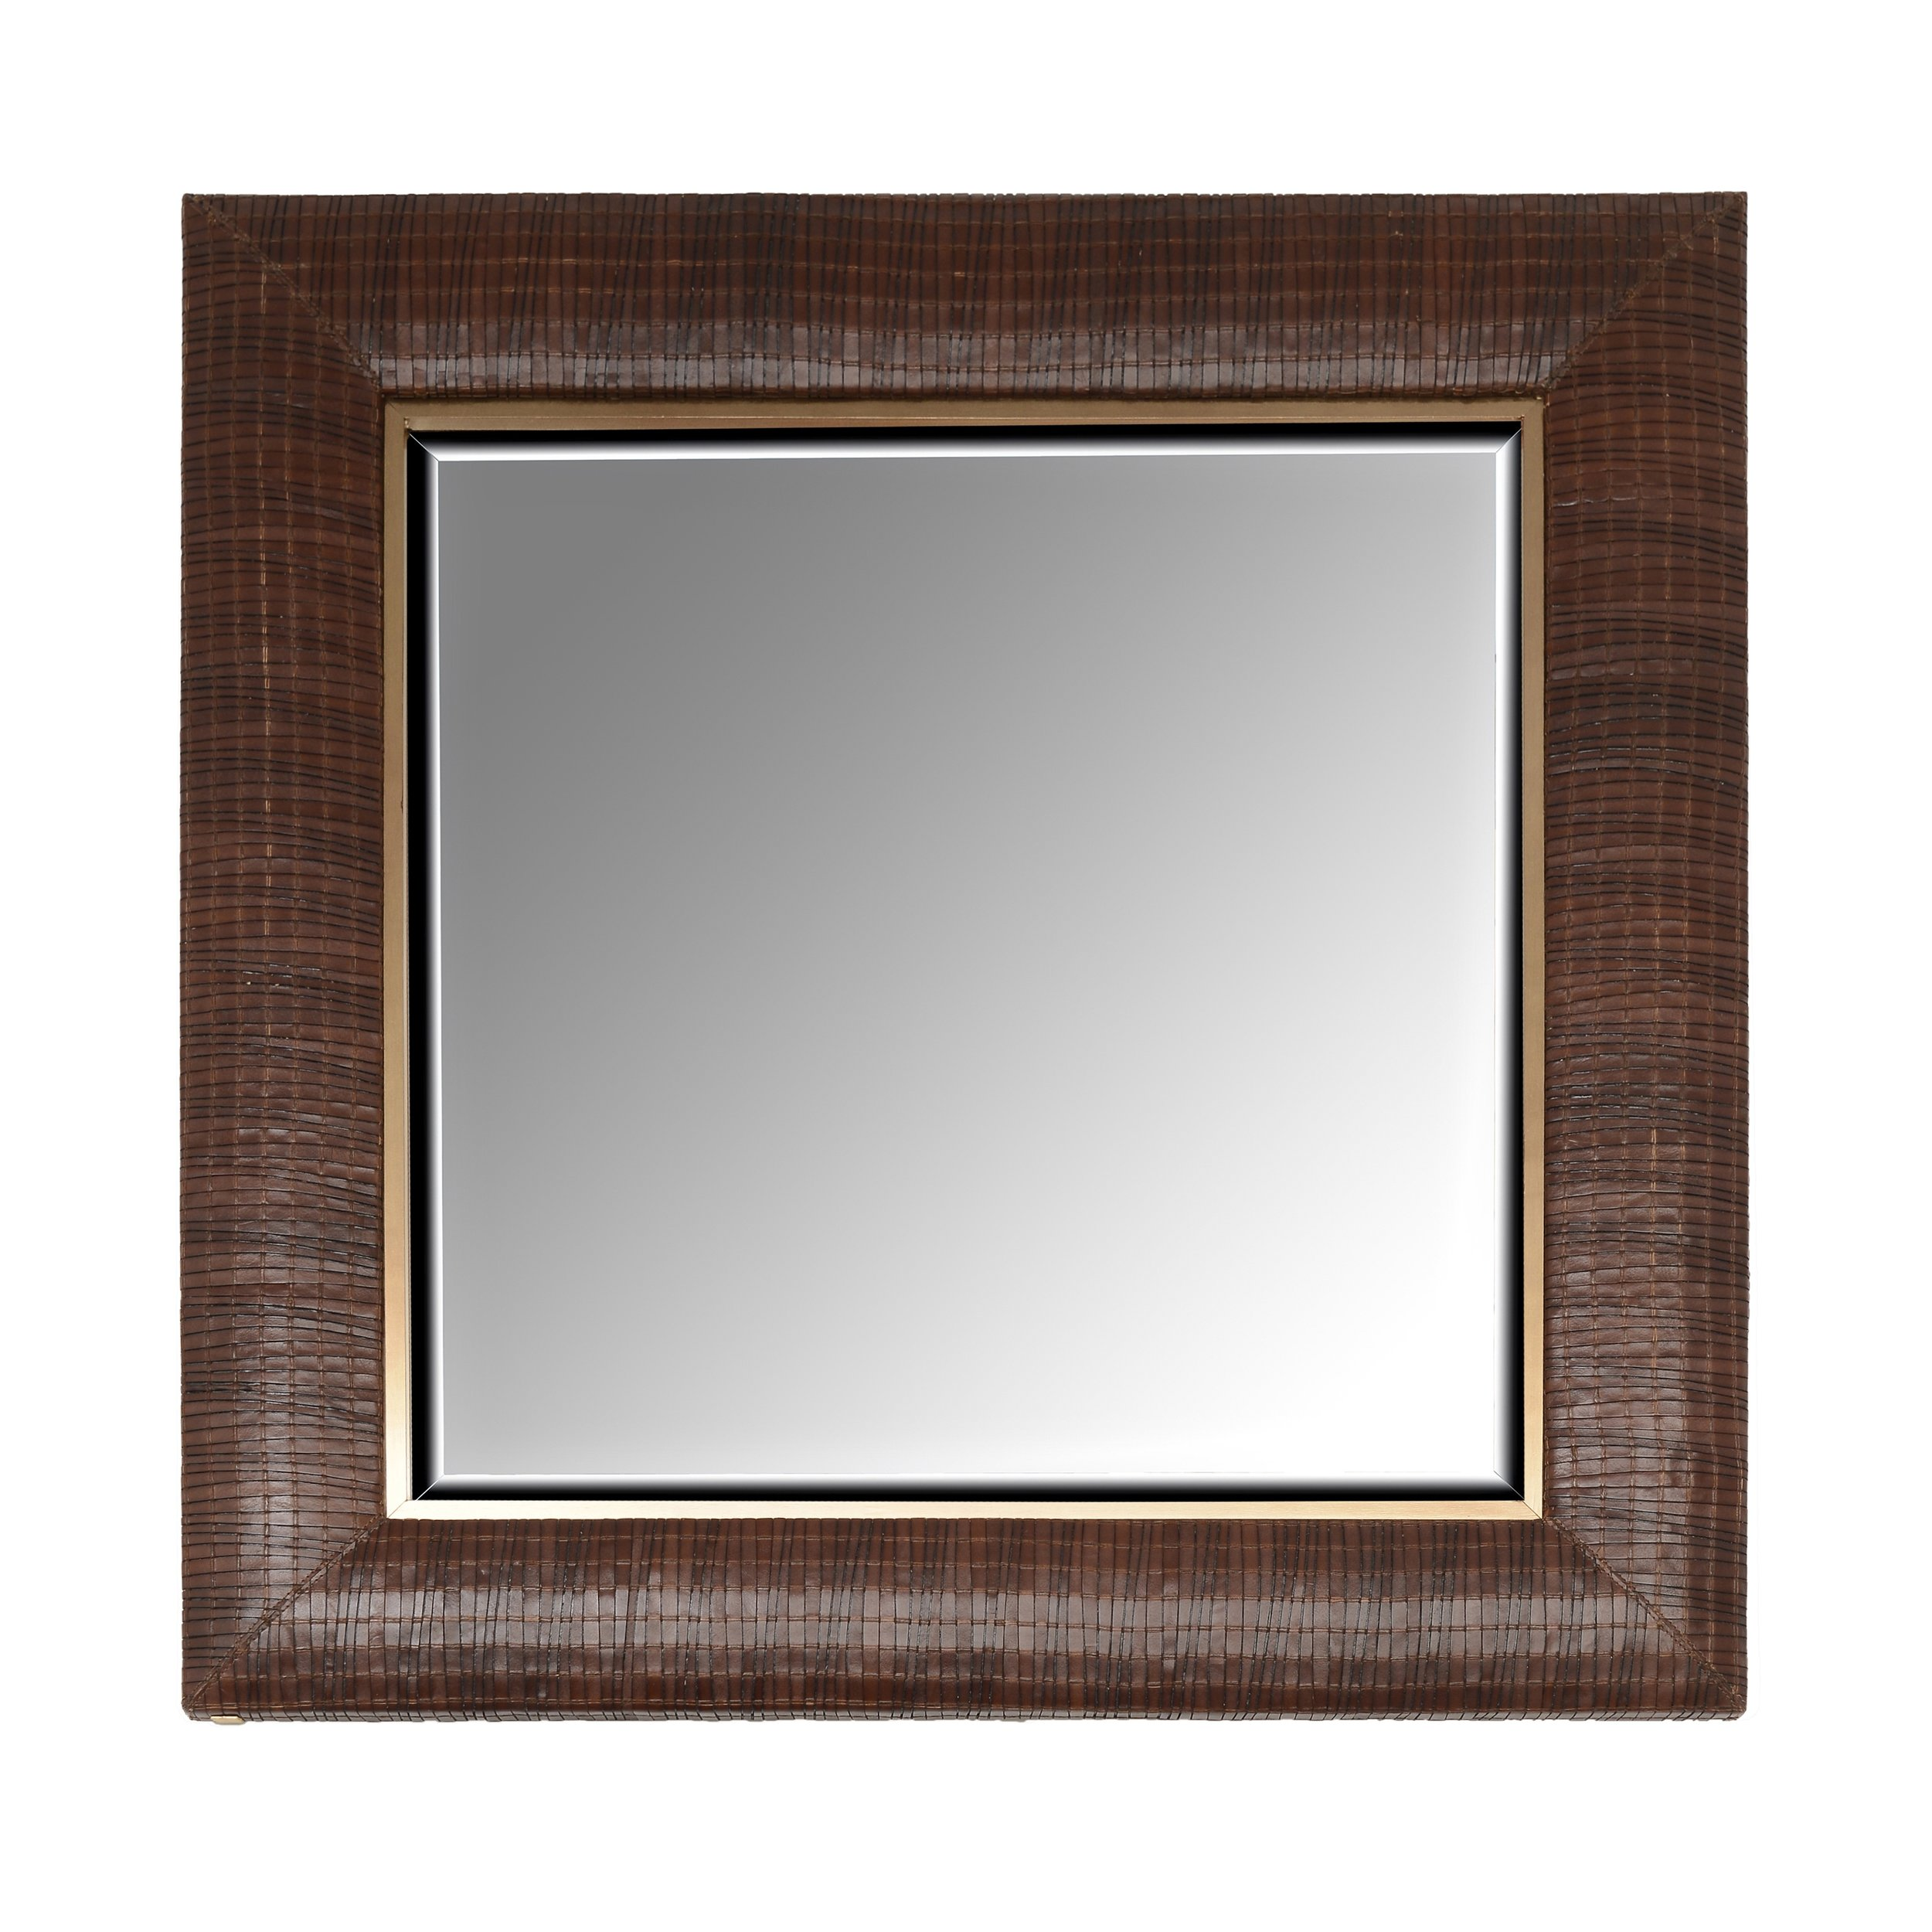 Woven Italian Leather Framed Mirror